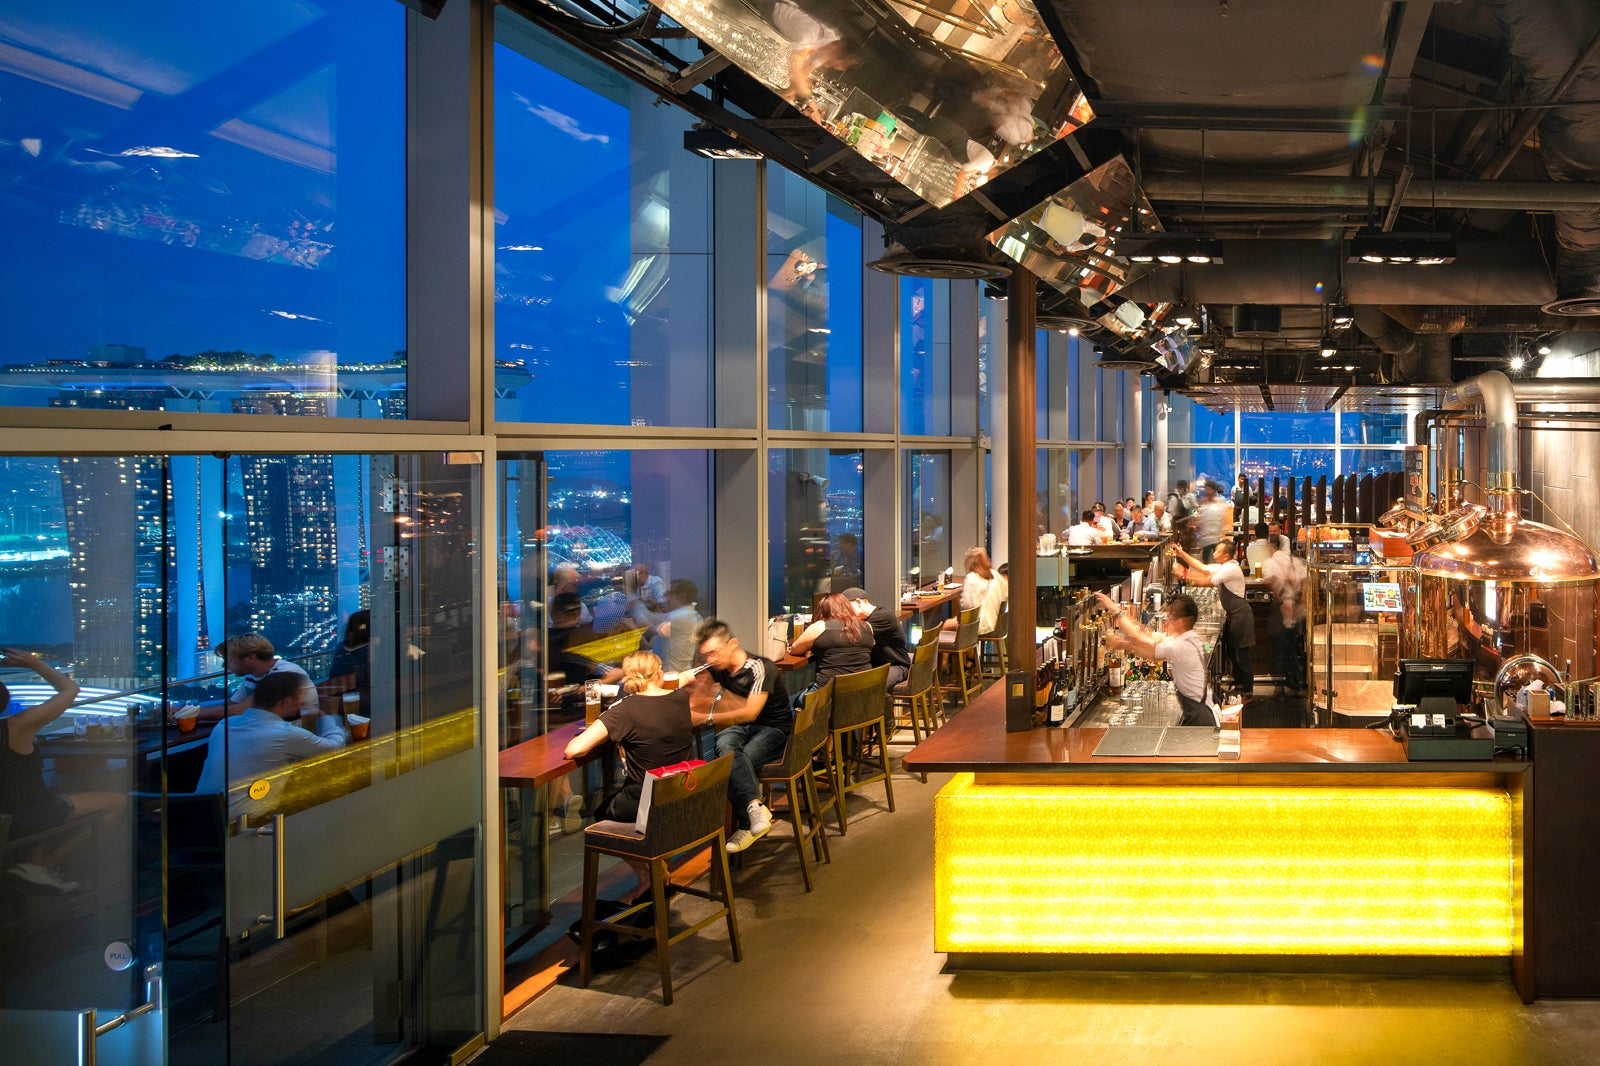 Level33 Rooftop Bar in Singapore - Rooftop Microbrewery in Marina Bay